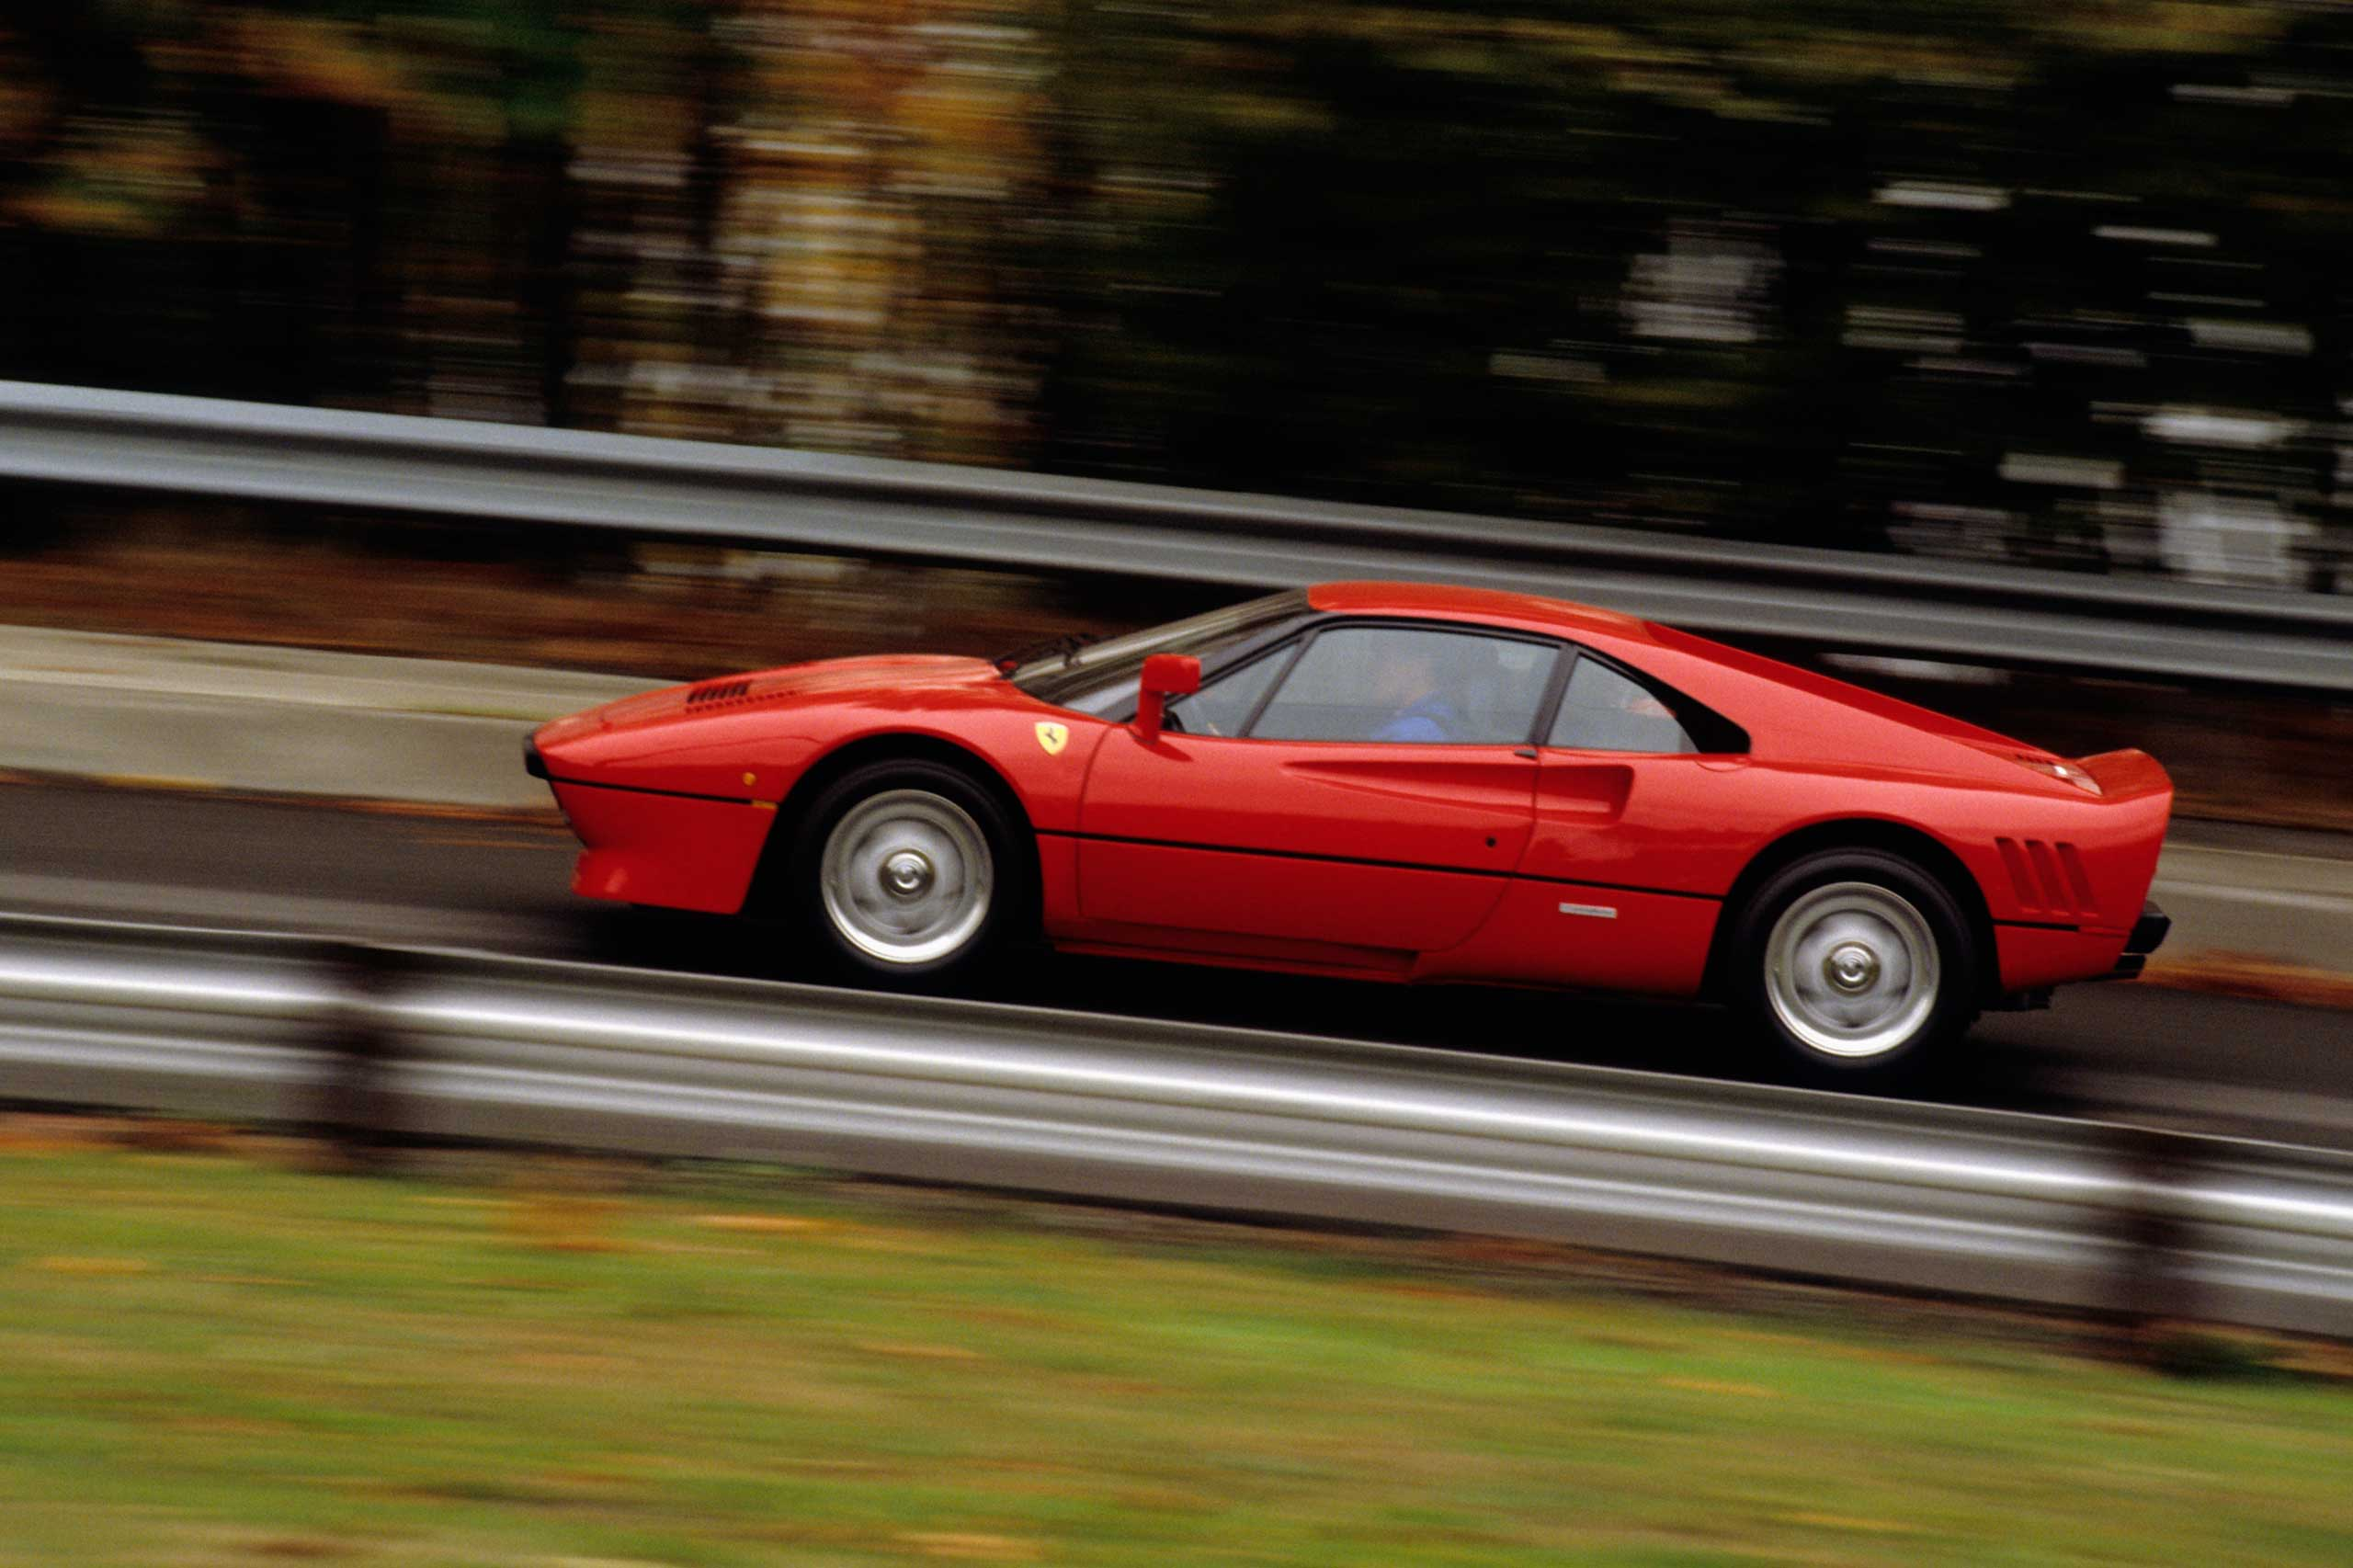 1988: The 288 GTO was named for the car's 2.8 liter V8 engine.